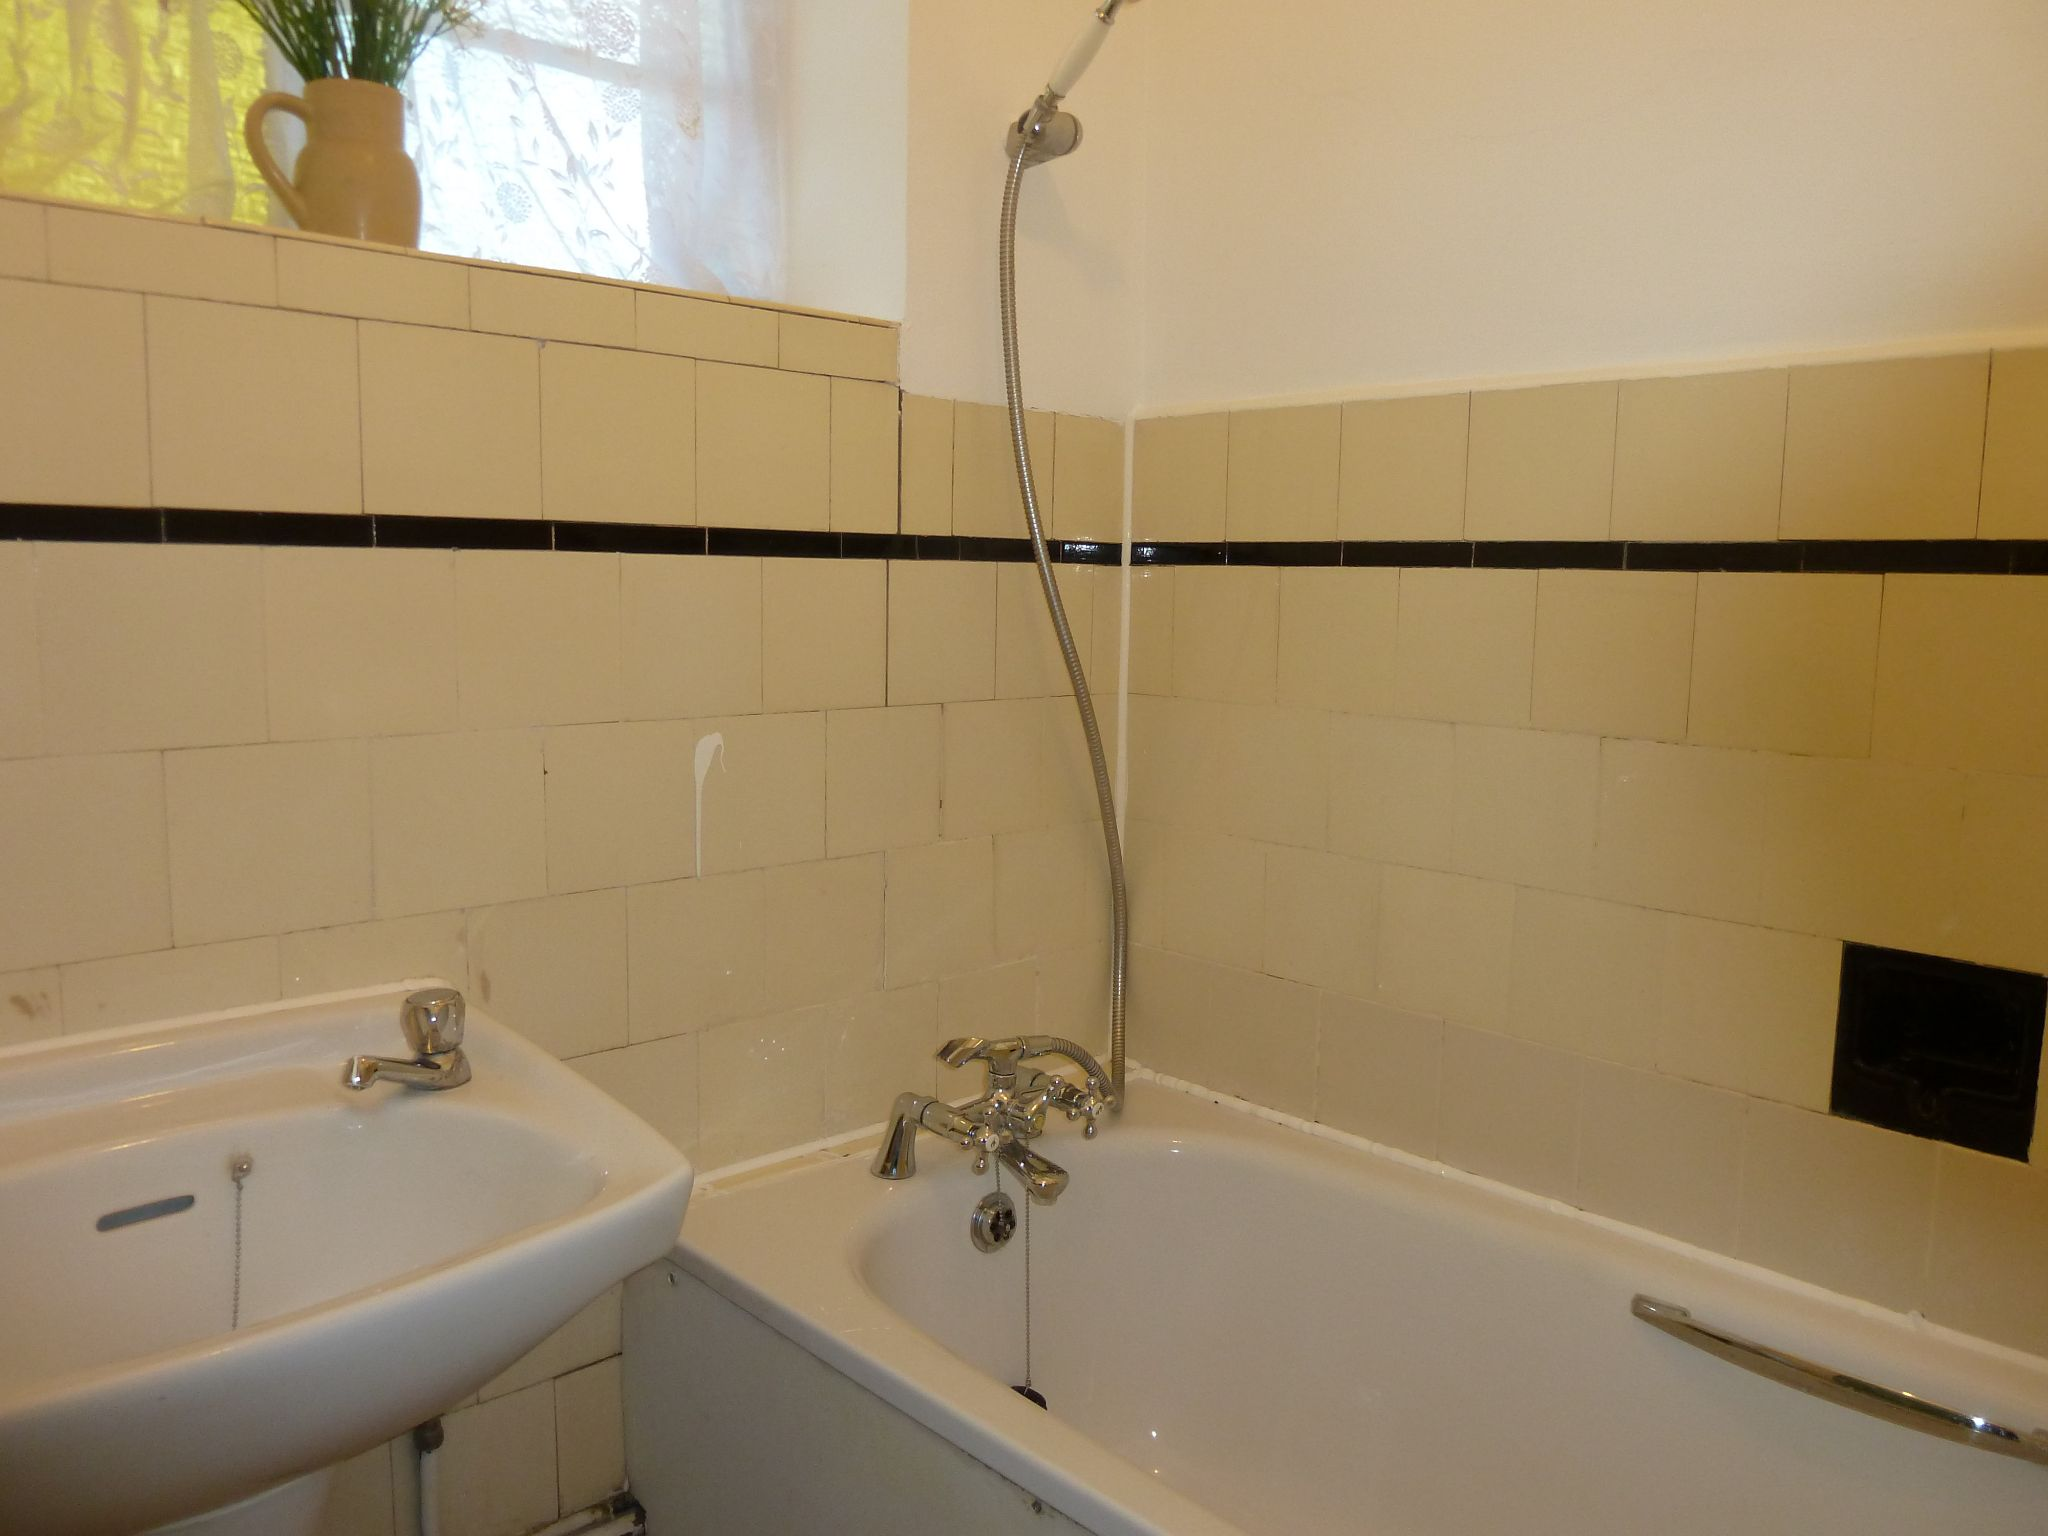 1 bedroom flat flat/apartment Under Offer in London - Bathroom/shower